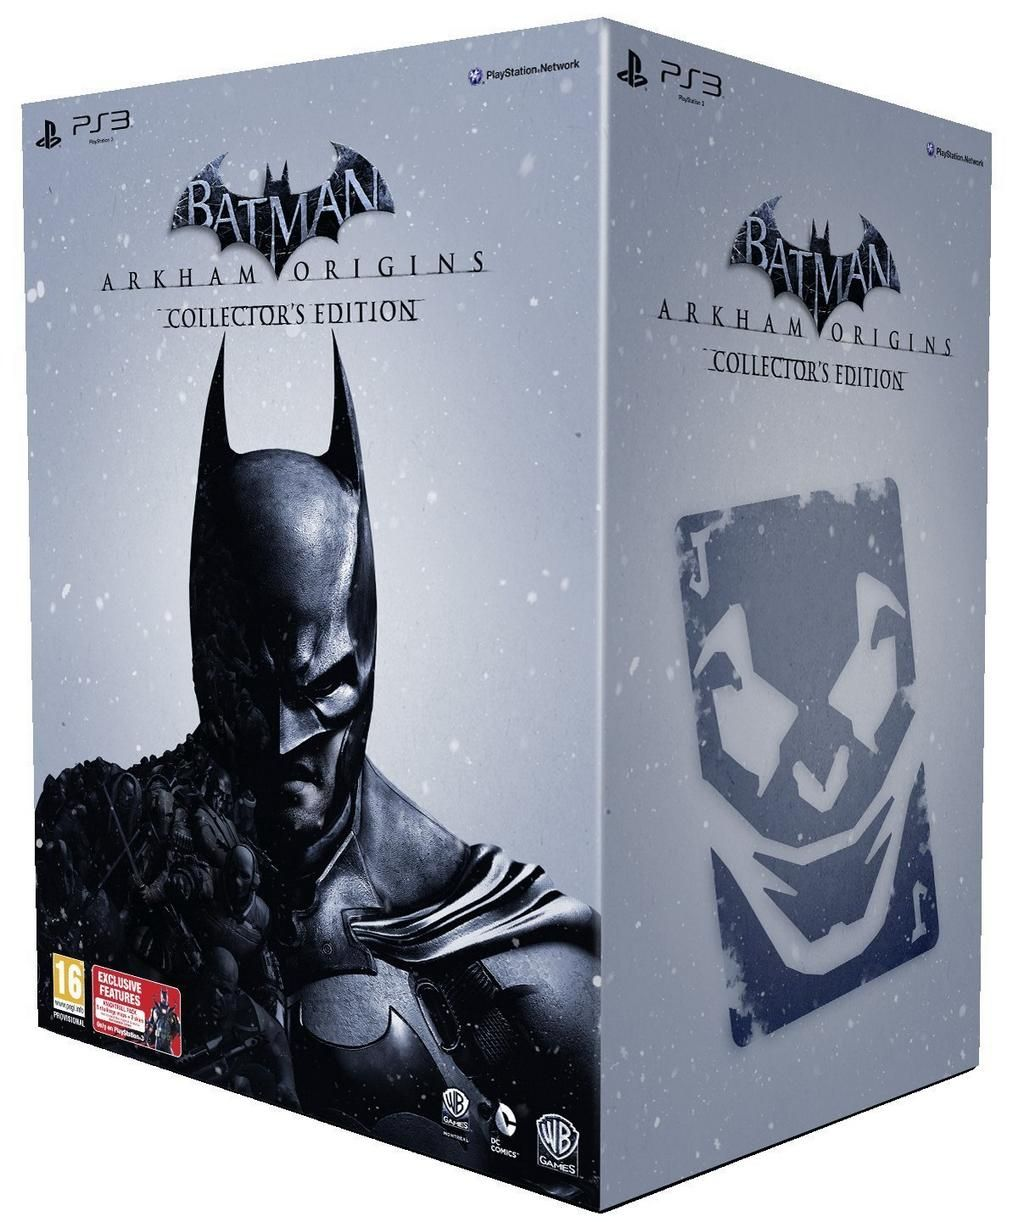 ⬇ PRICE DROP Batman: Arkham Origins Collector's Edition £37.96  ✅ LOWEST EVER PRICE